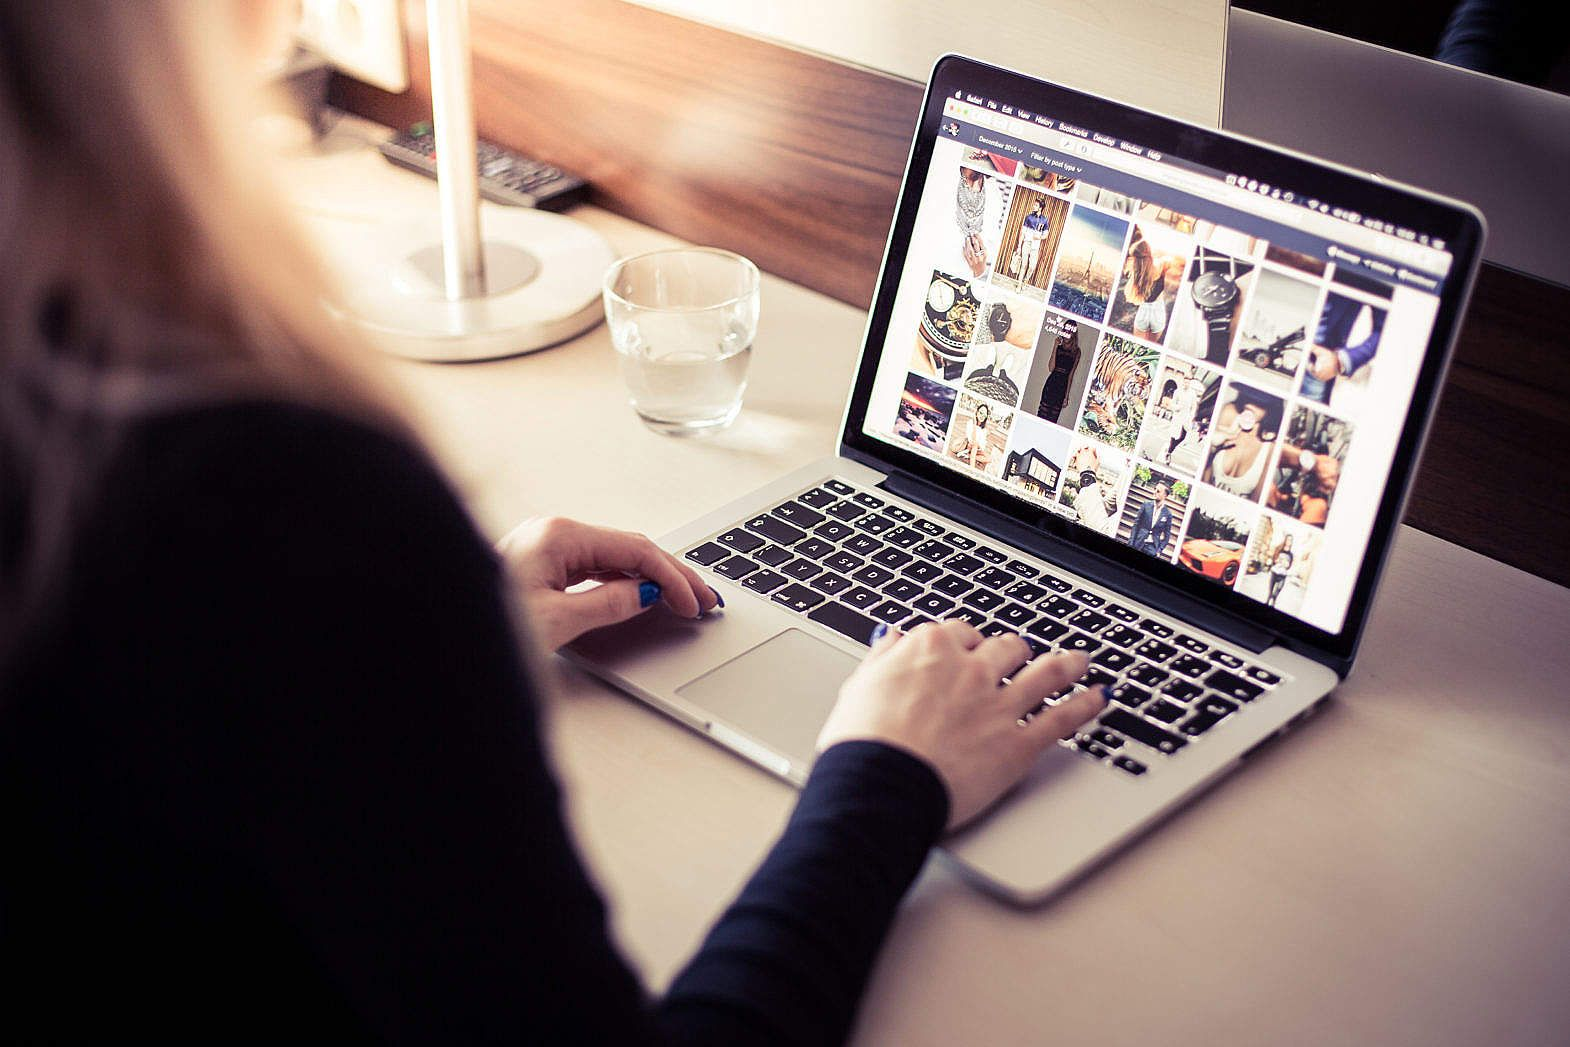 woman browsing tumblr on her laptop free stock photo download